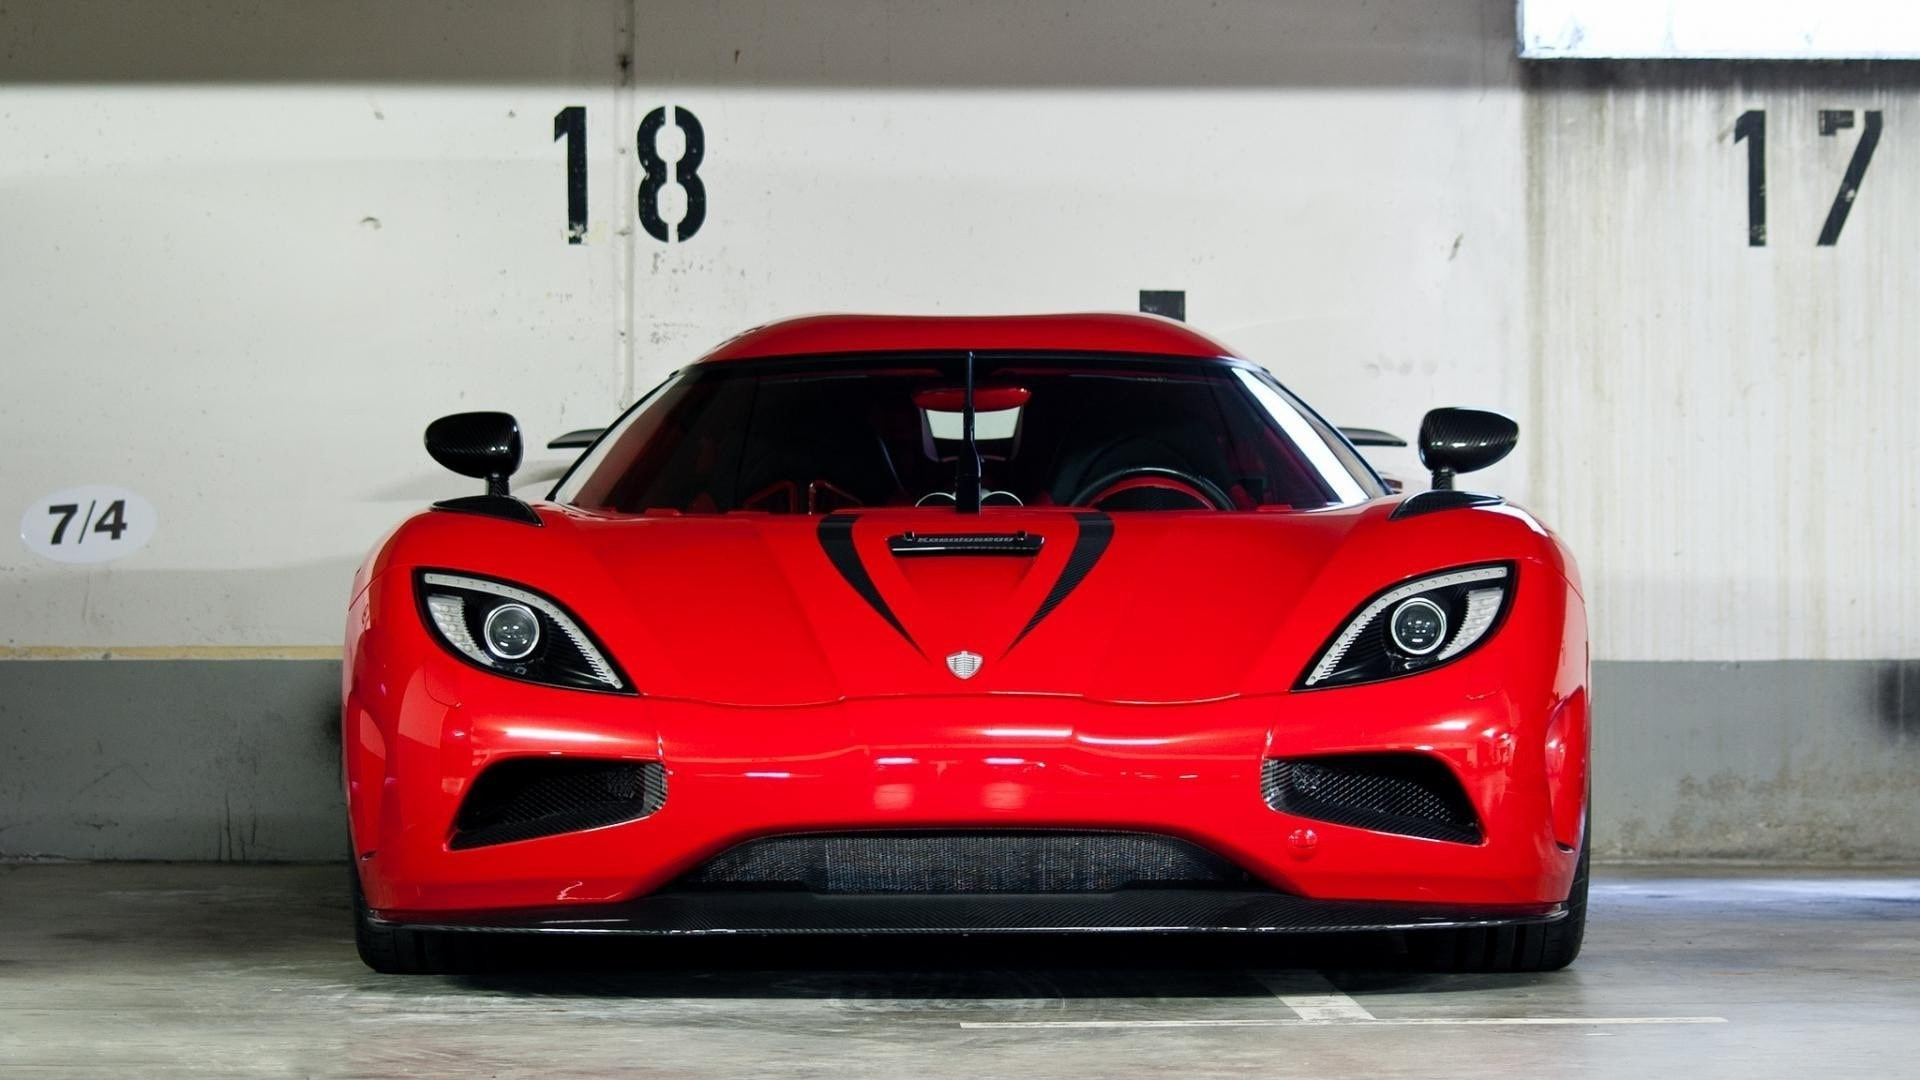 Koenigsegg Agera R HD pics Koenigsegg Agera R Wallpapers hd